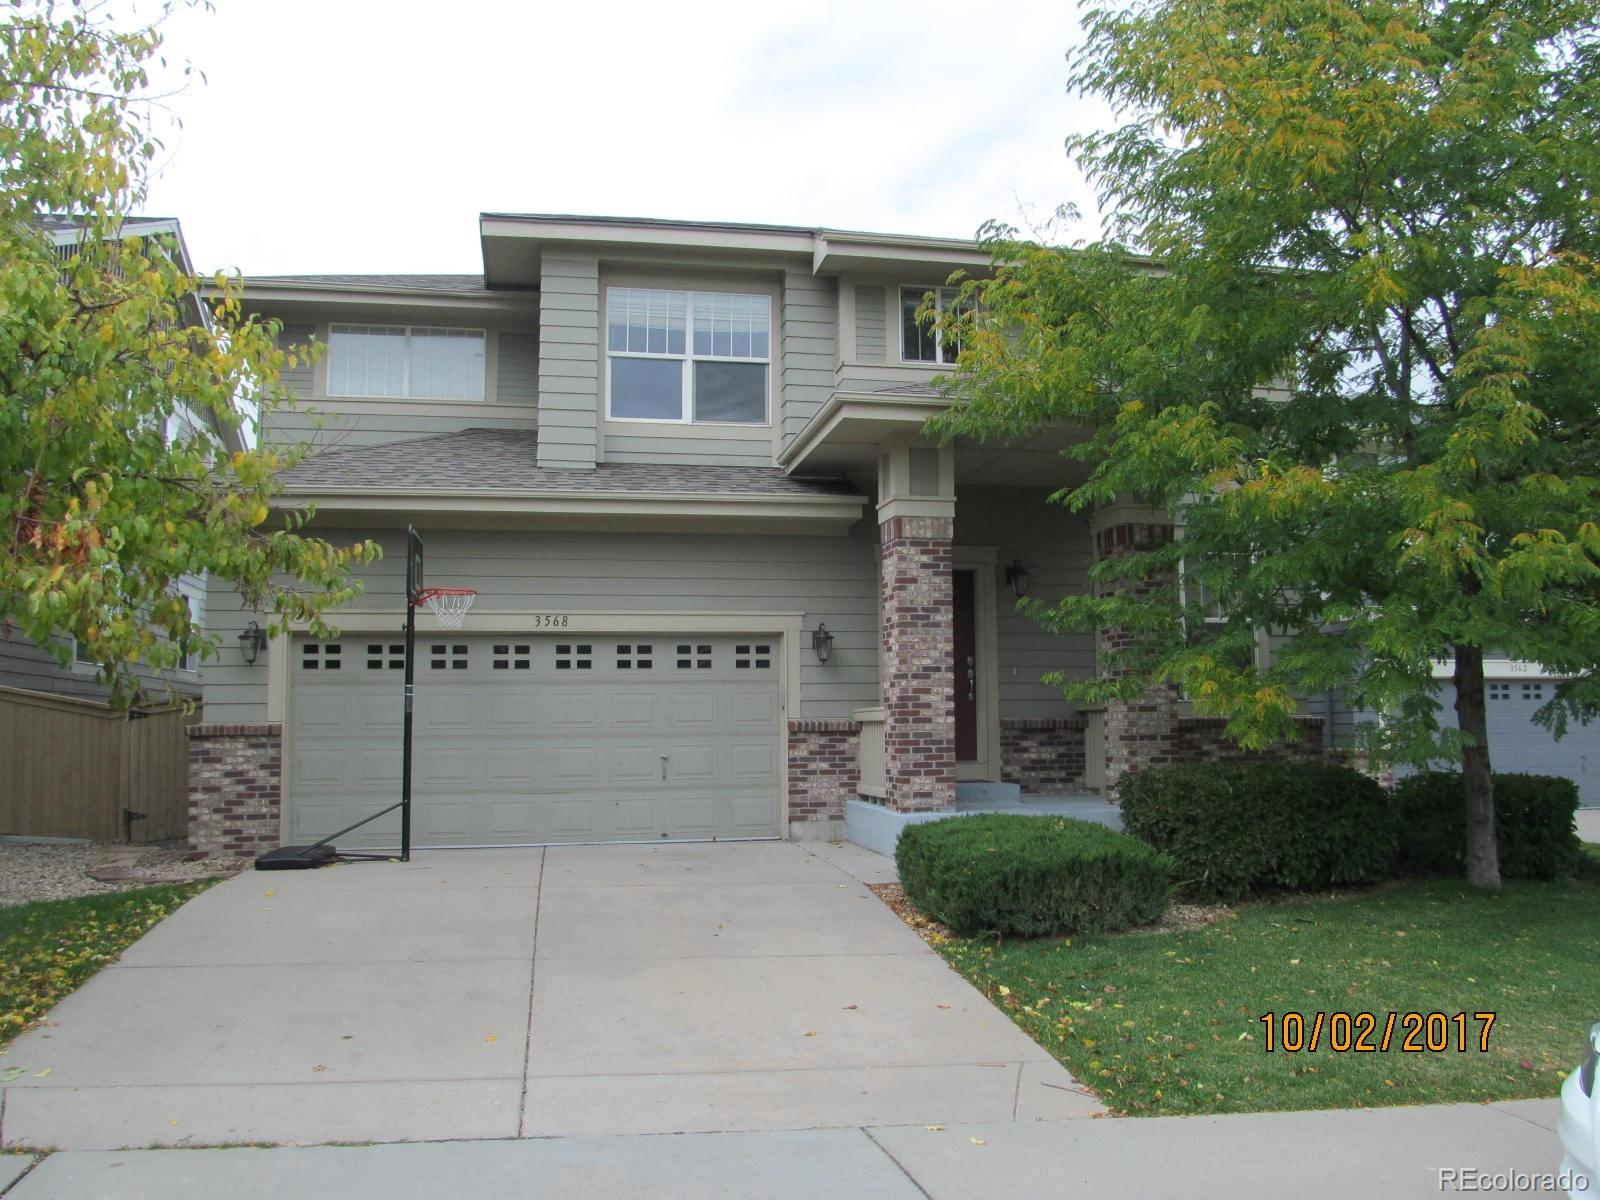 3568 Craftsbury Drive, Highlands Ranch, CO 80126 - Highlands Ranch, CO real estate listing